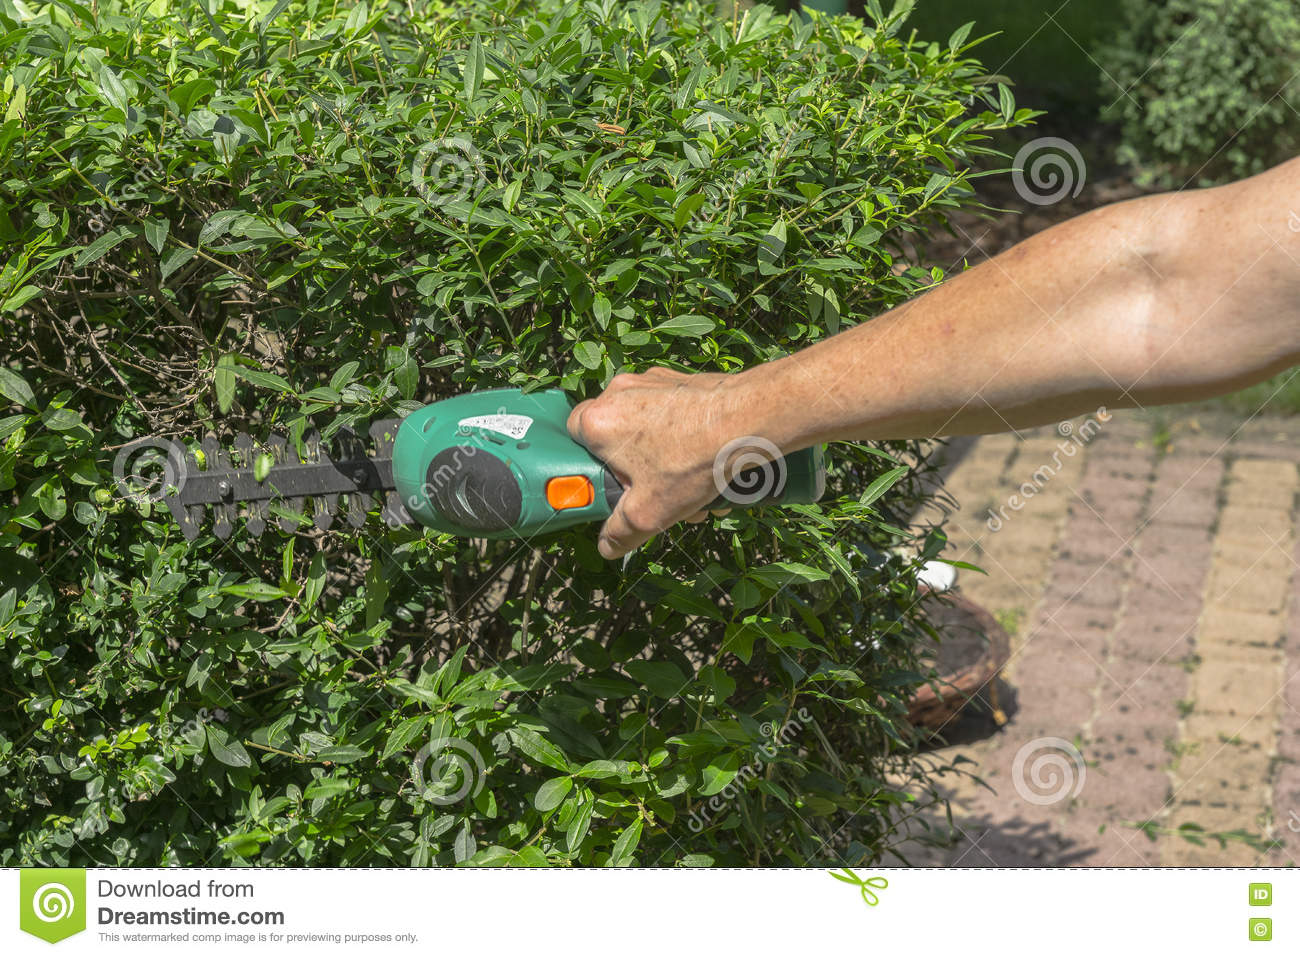 How to choose a garden trimmer